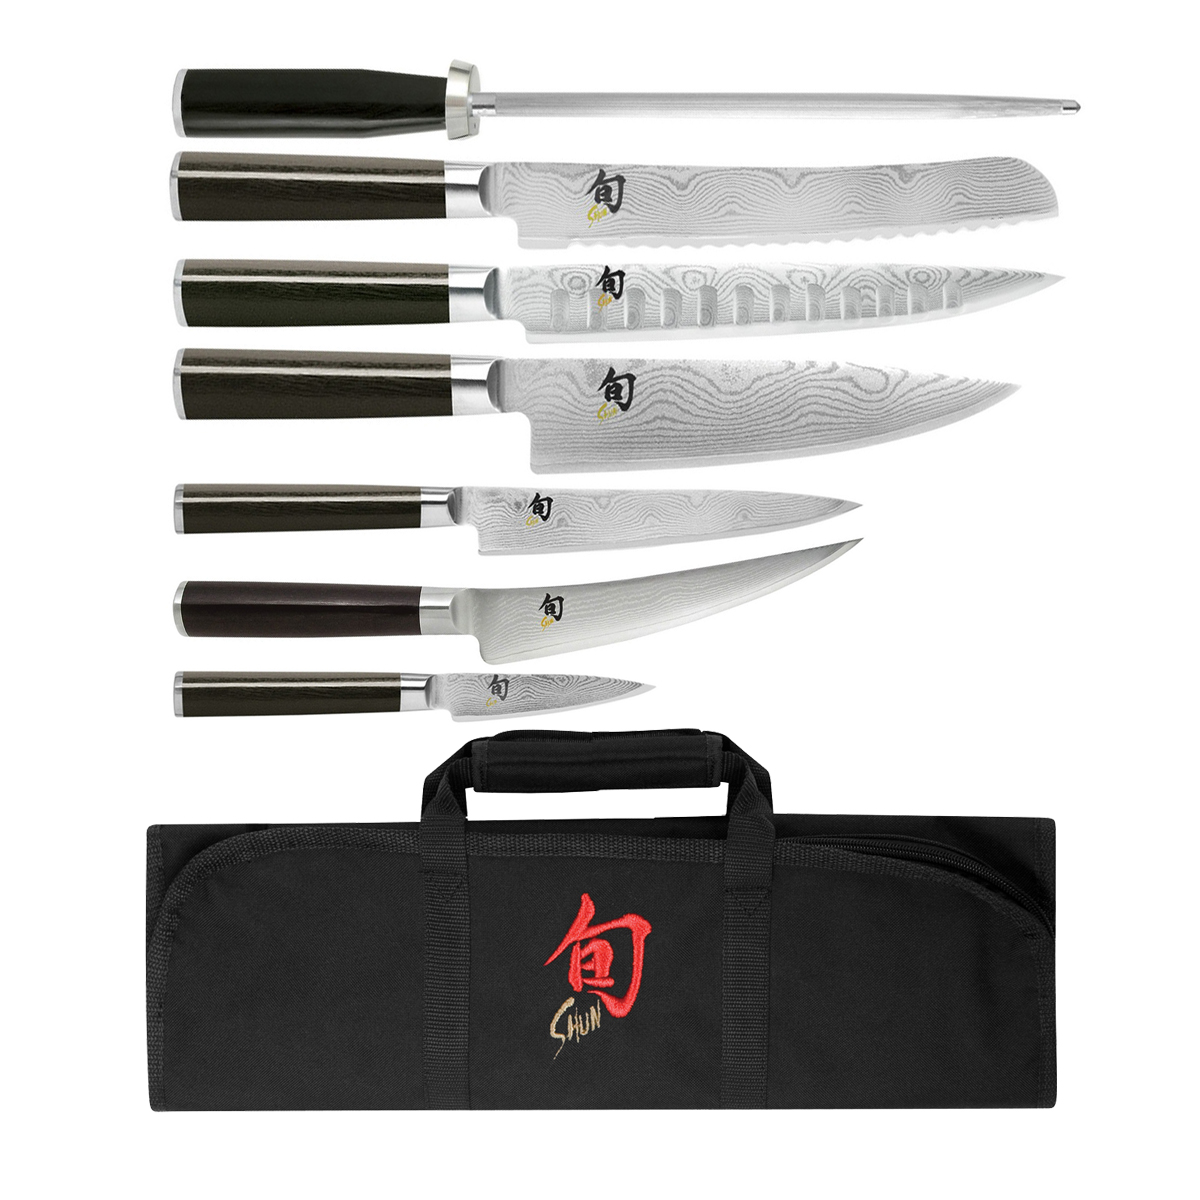 click to enlarge - Shun Knife